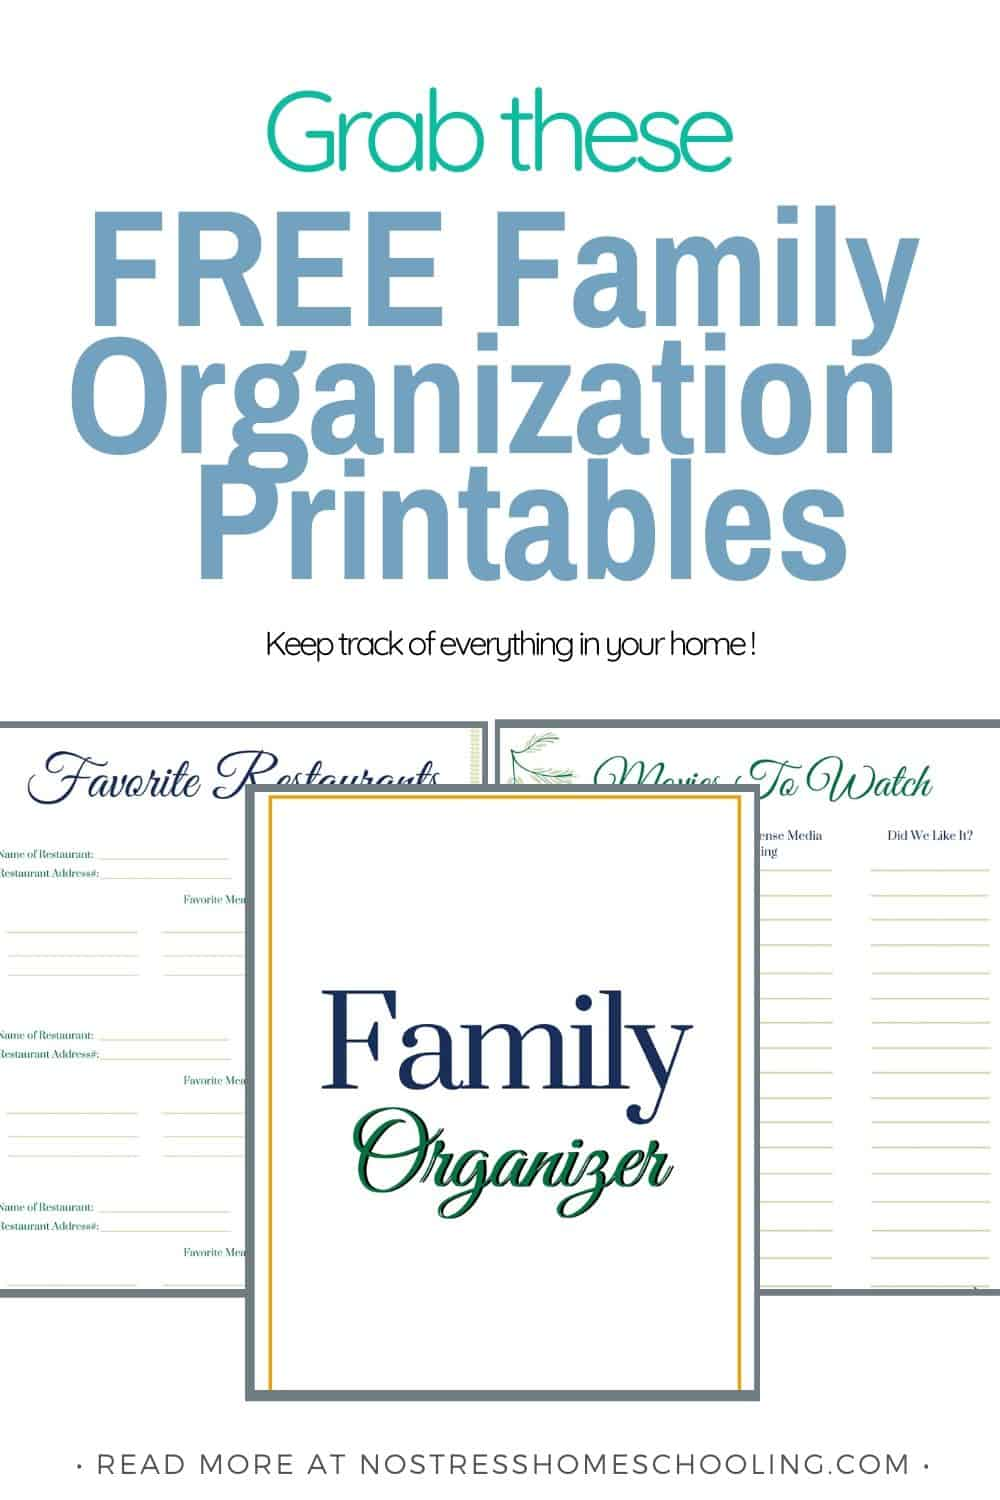 Its time to update your home management binder with these family organization printables. Keep track of fav restaurants, fav. movies & more.